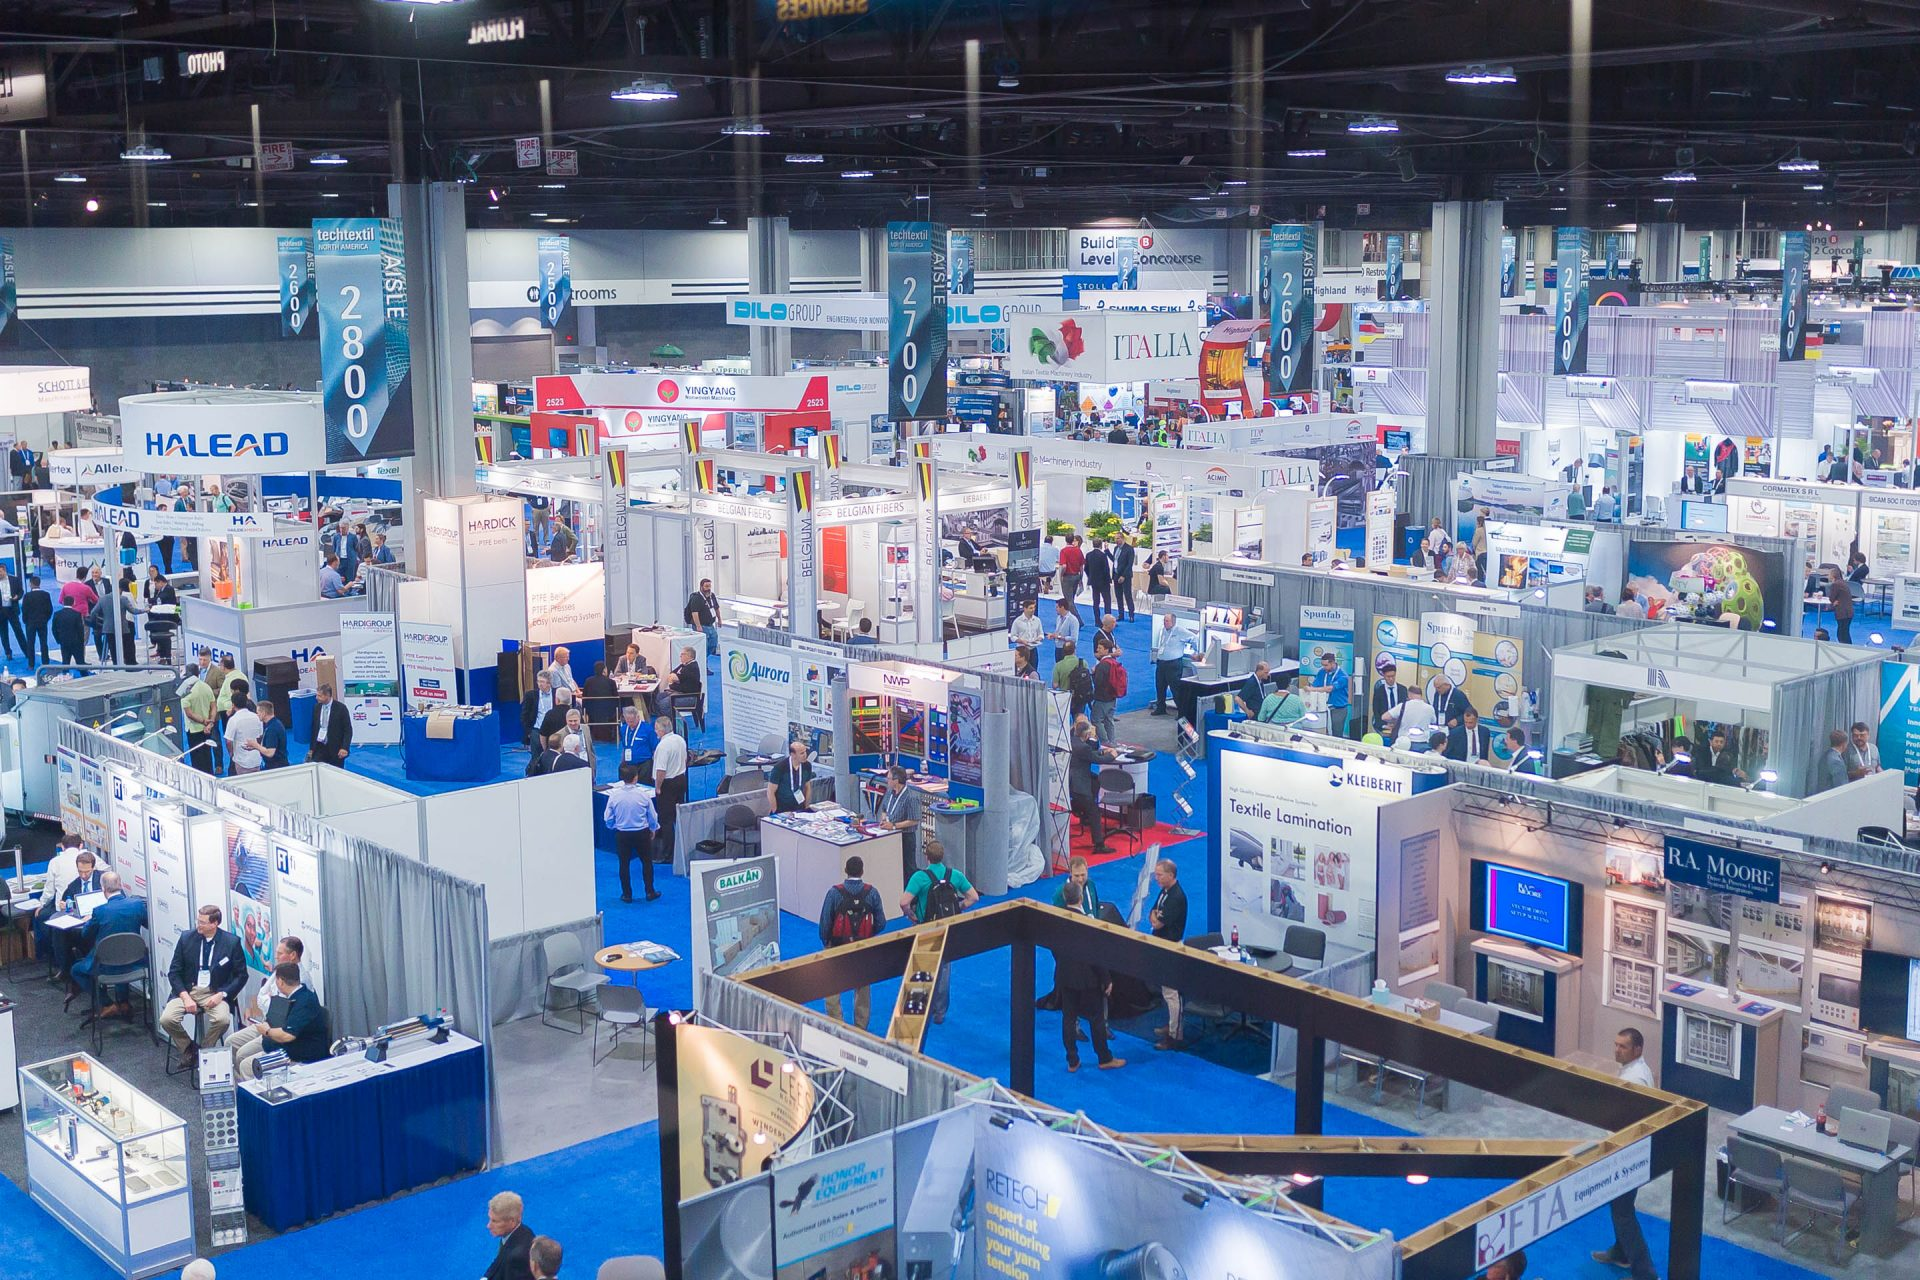 The upcoming edition of Techtextil North America will take place from 26-28 February 2019 in Raleigh, North Carolina. © Messe Frankfurt/Techtextil North America